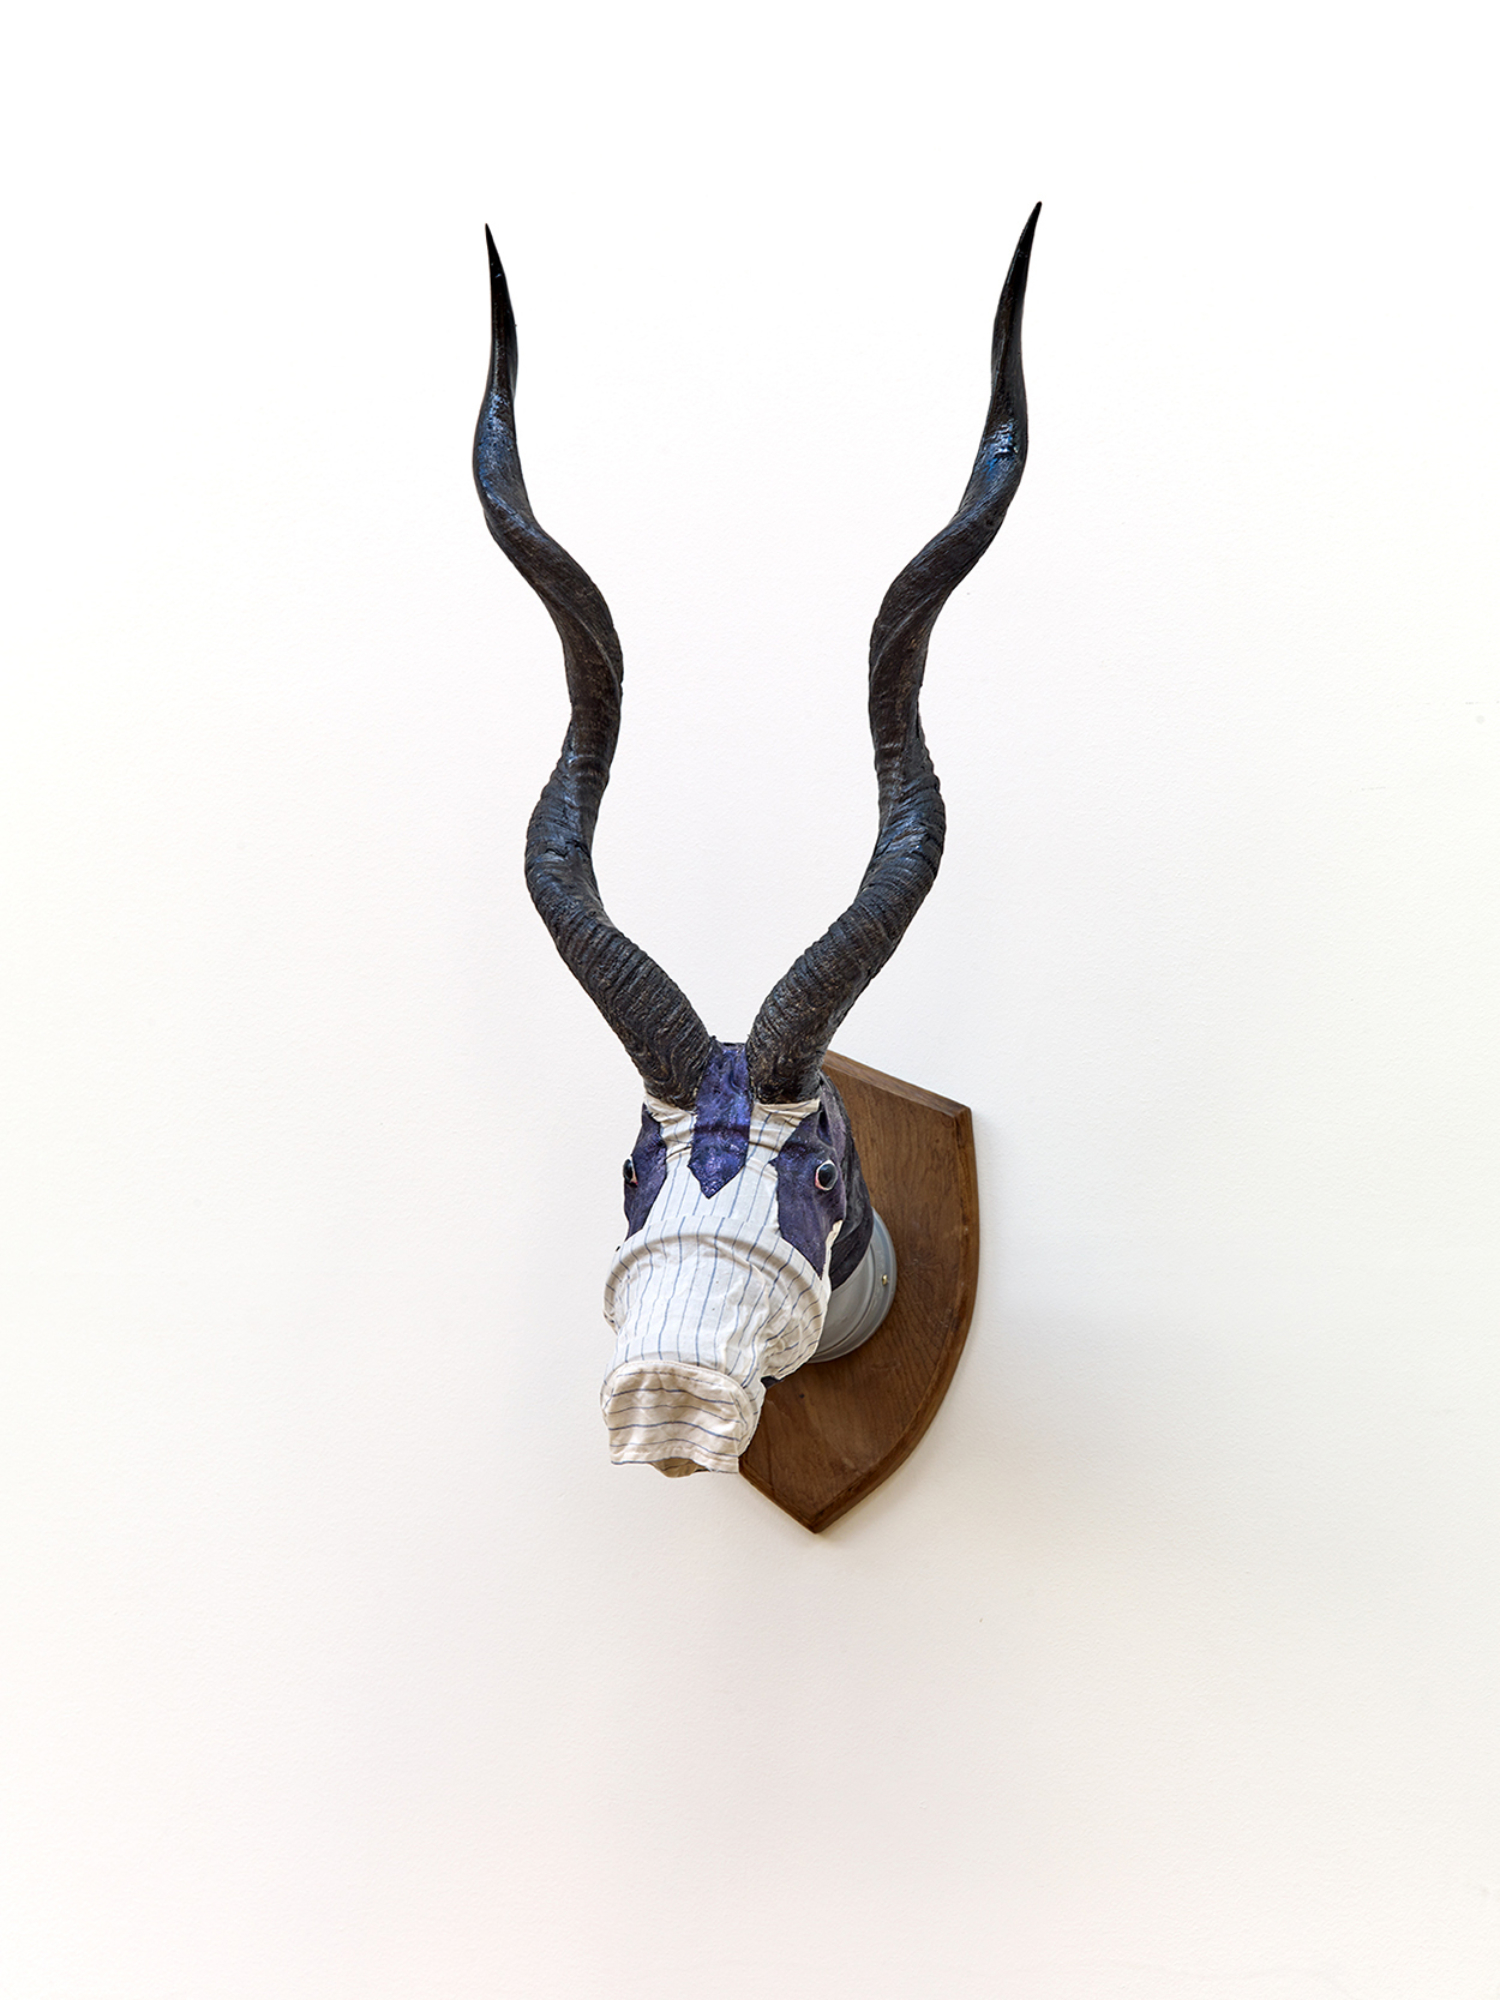 """Jimmie Durham, """"Africa and Antinomianism"""", 2001, Collection Mudam Luxembourg, Donation 2013 – Blanche et Henri Grethen-Moutrier"""